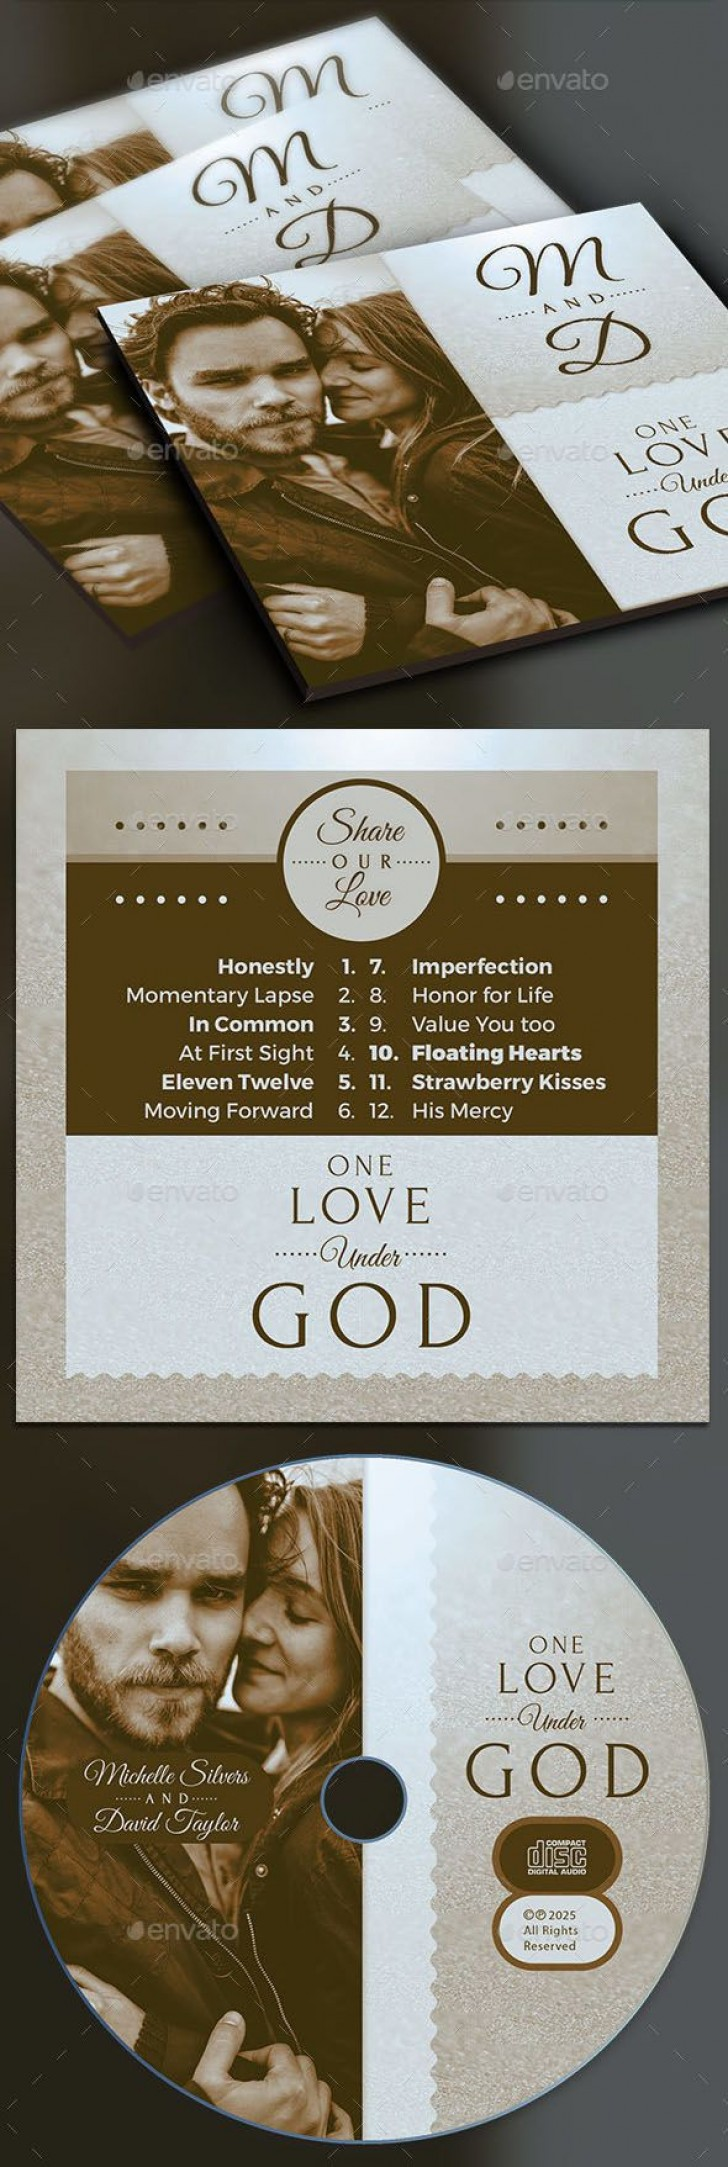 004 Beautiful Wedding Cd Cover Design Template Free Download Example 728